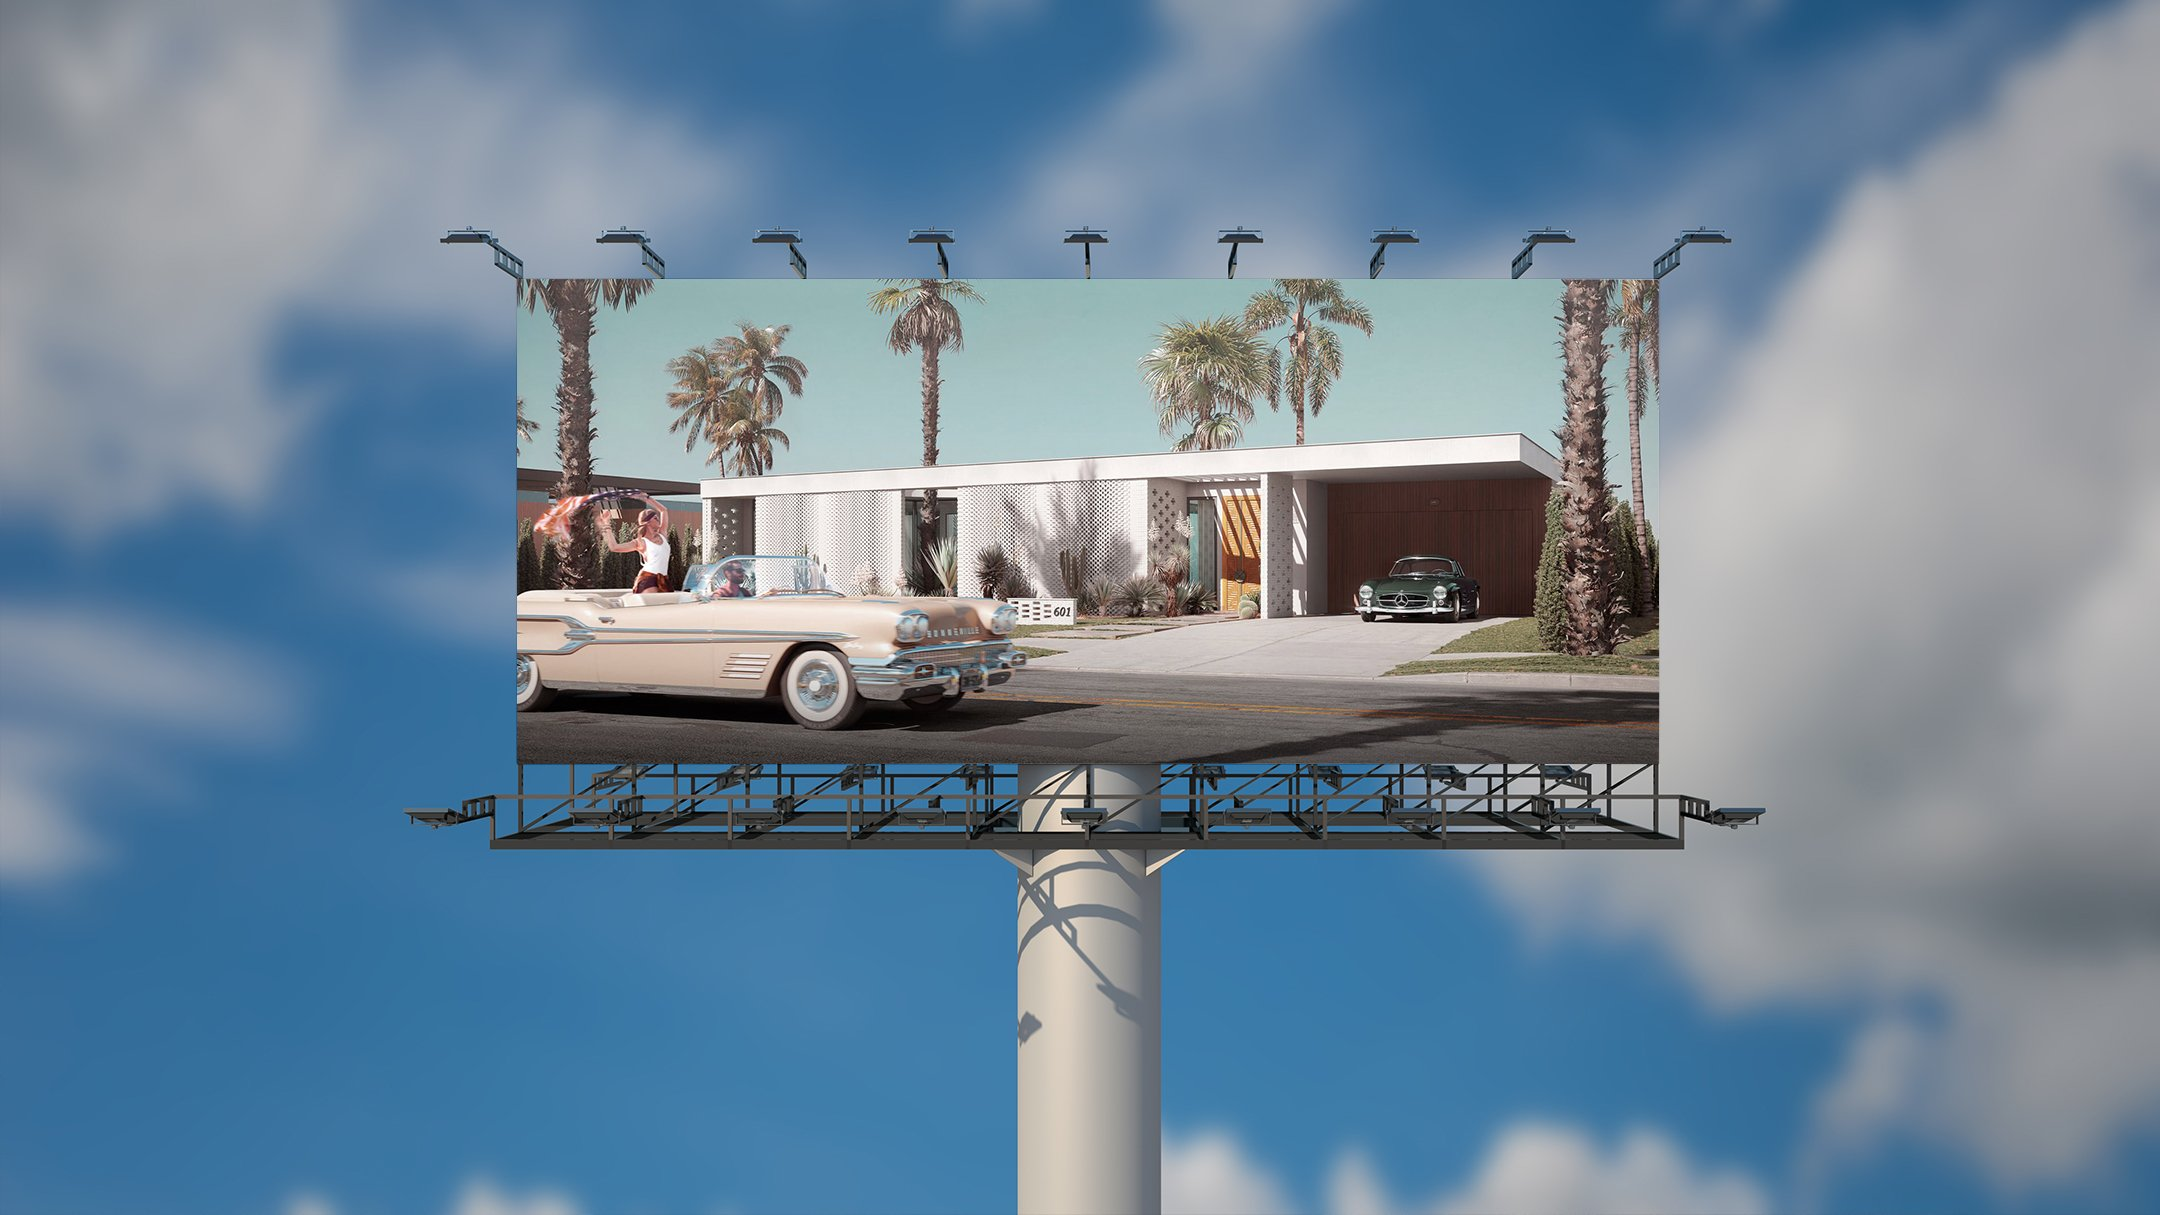 A Billboard with 3D Render Advertising Future Property